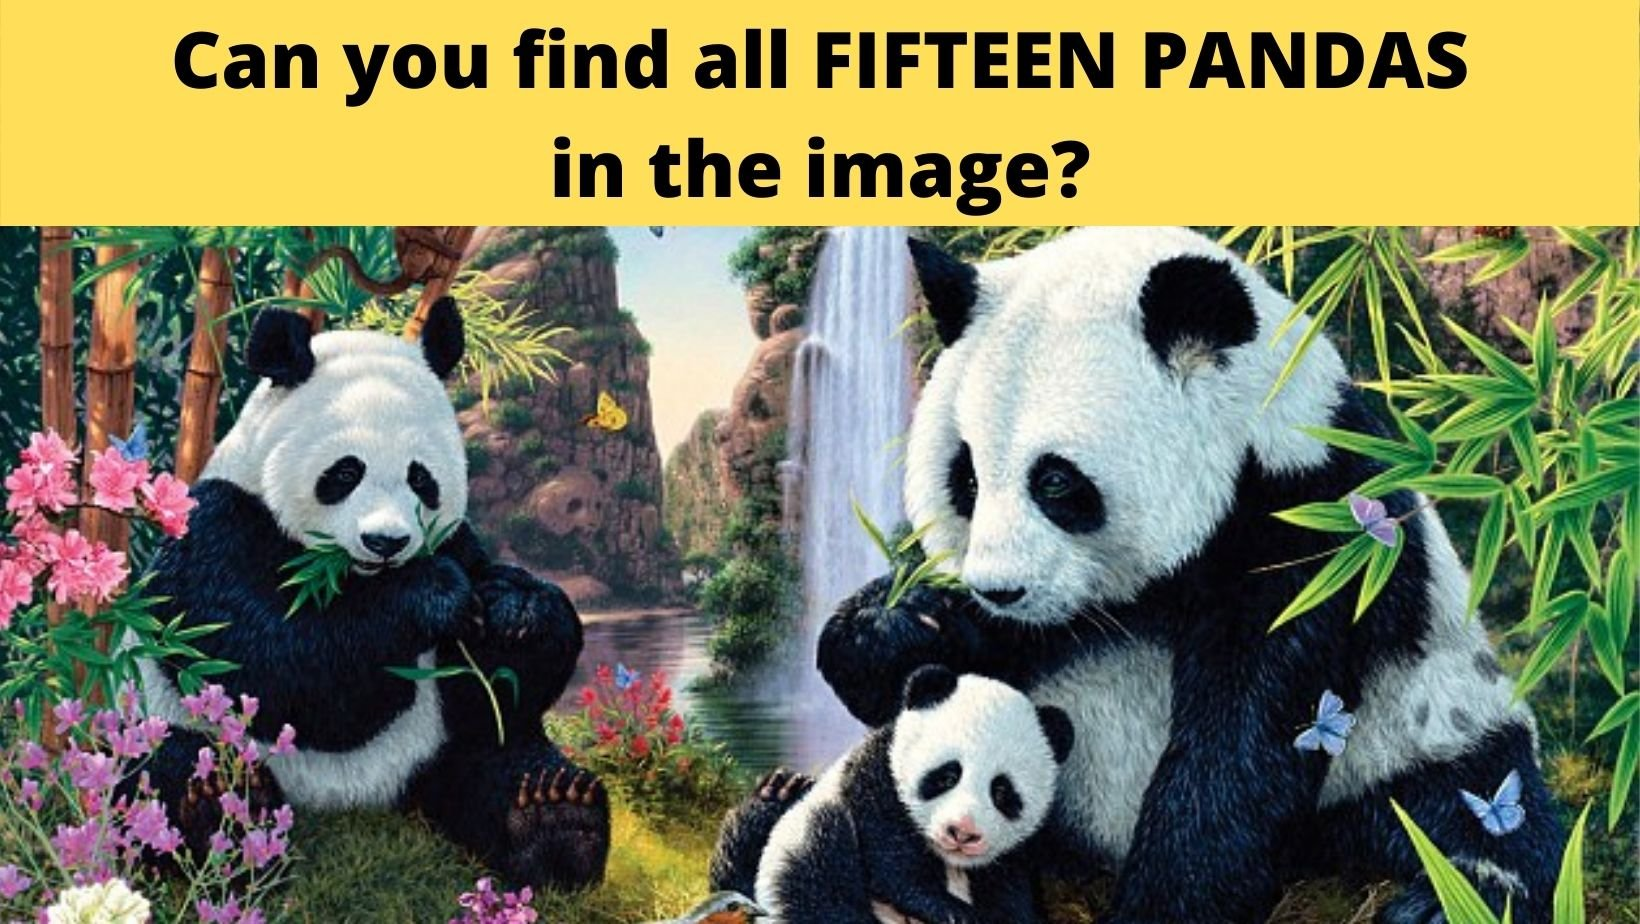 cover 22.jpg?resize=1200,630 - There Are FIFTEEN PANDAS In This Photo, Can You Find Them All?